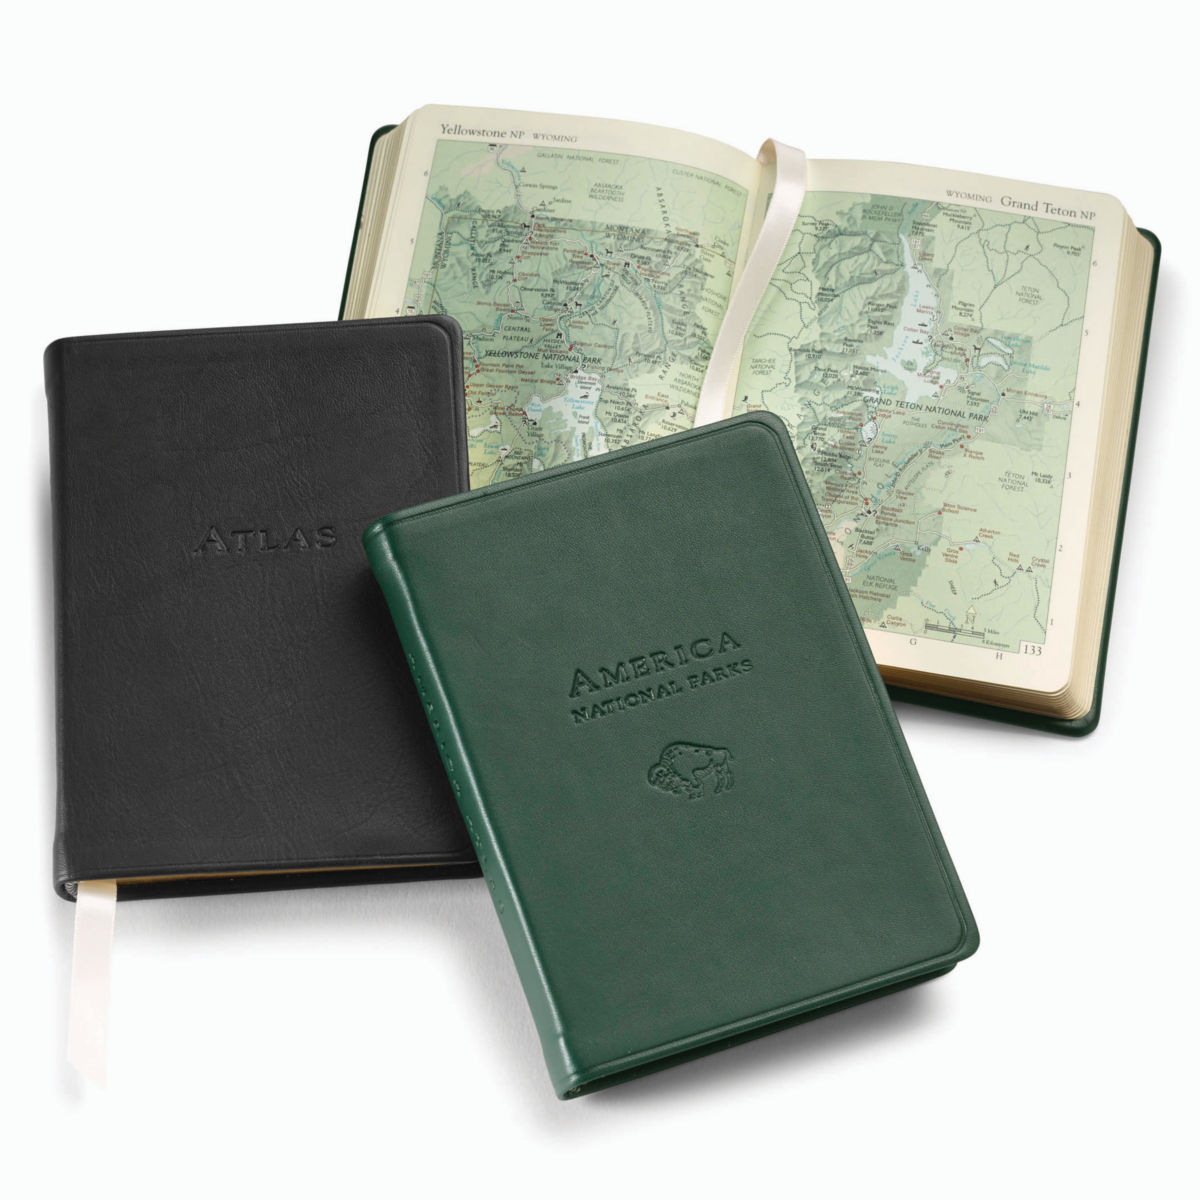 Personalized Leather-Bound Atlas - image number 0